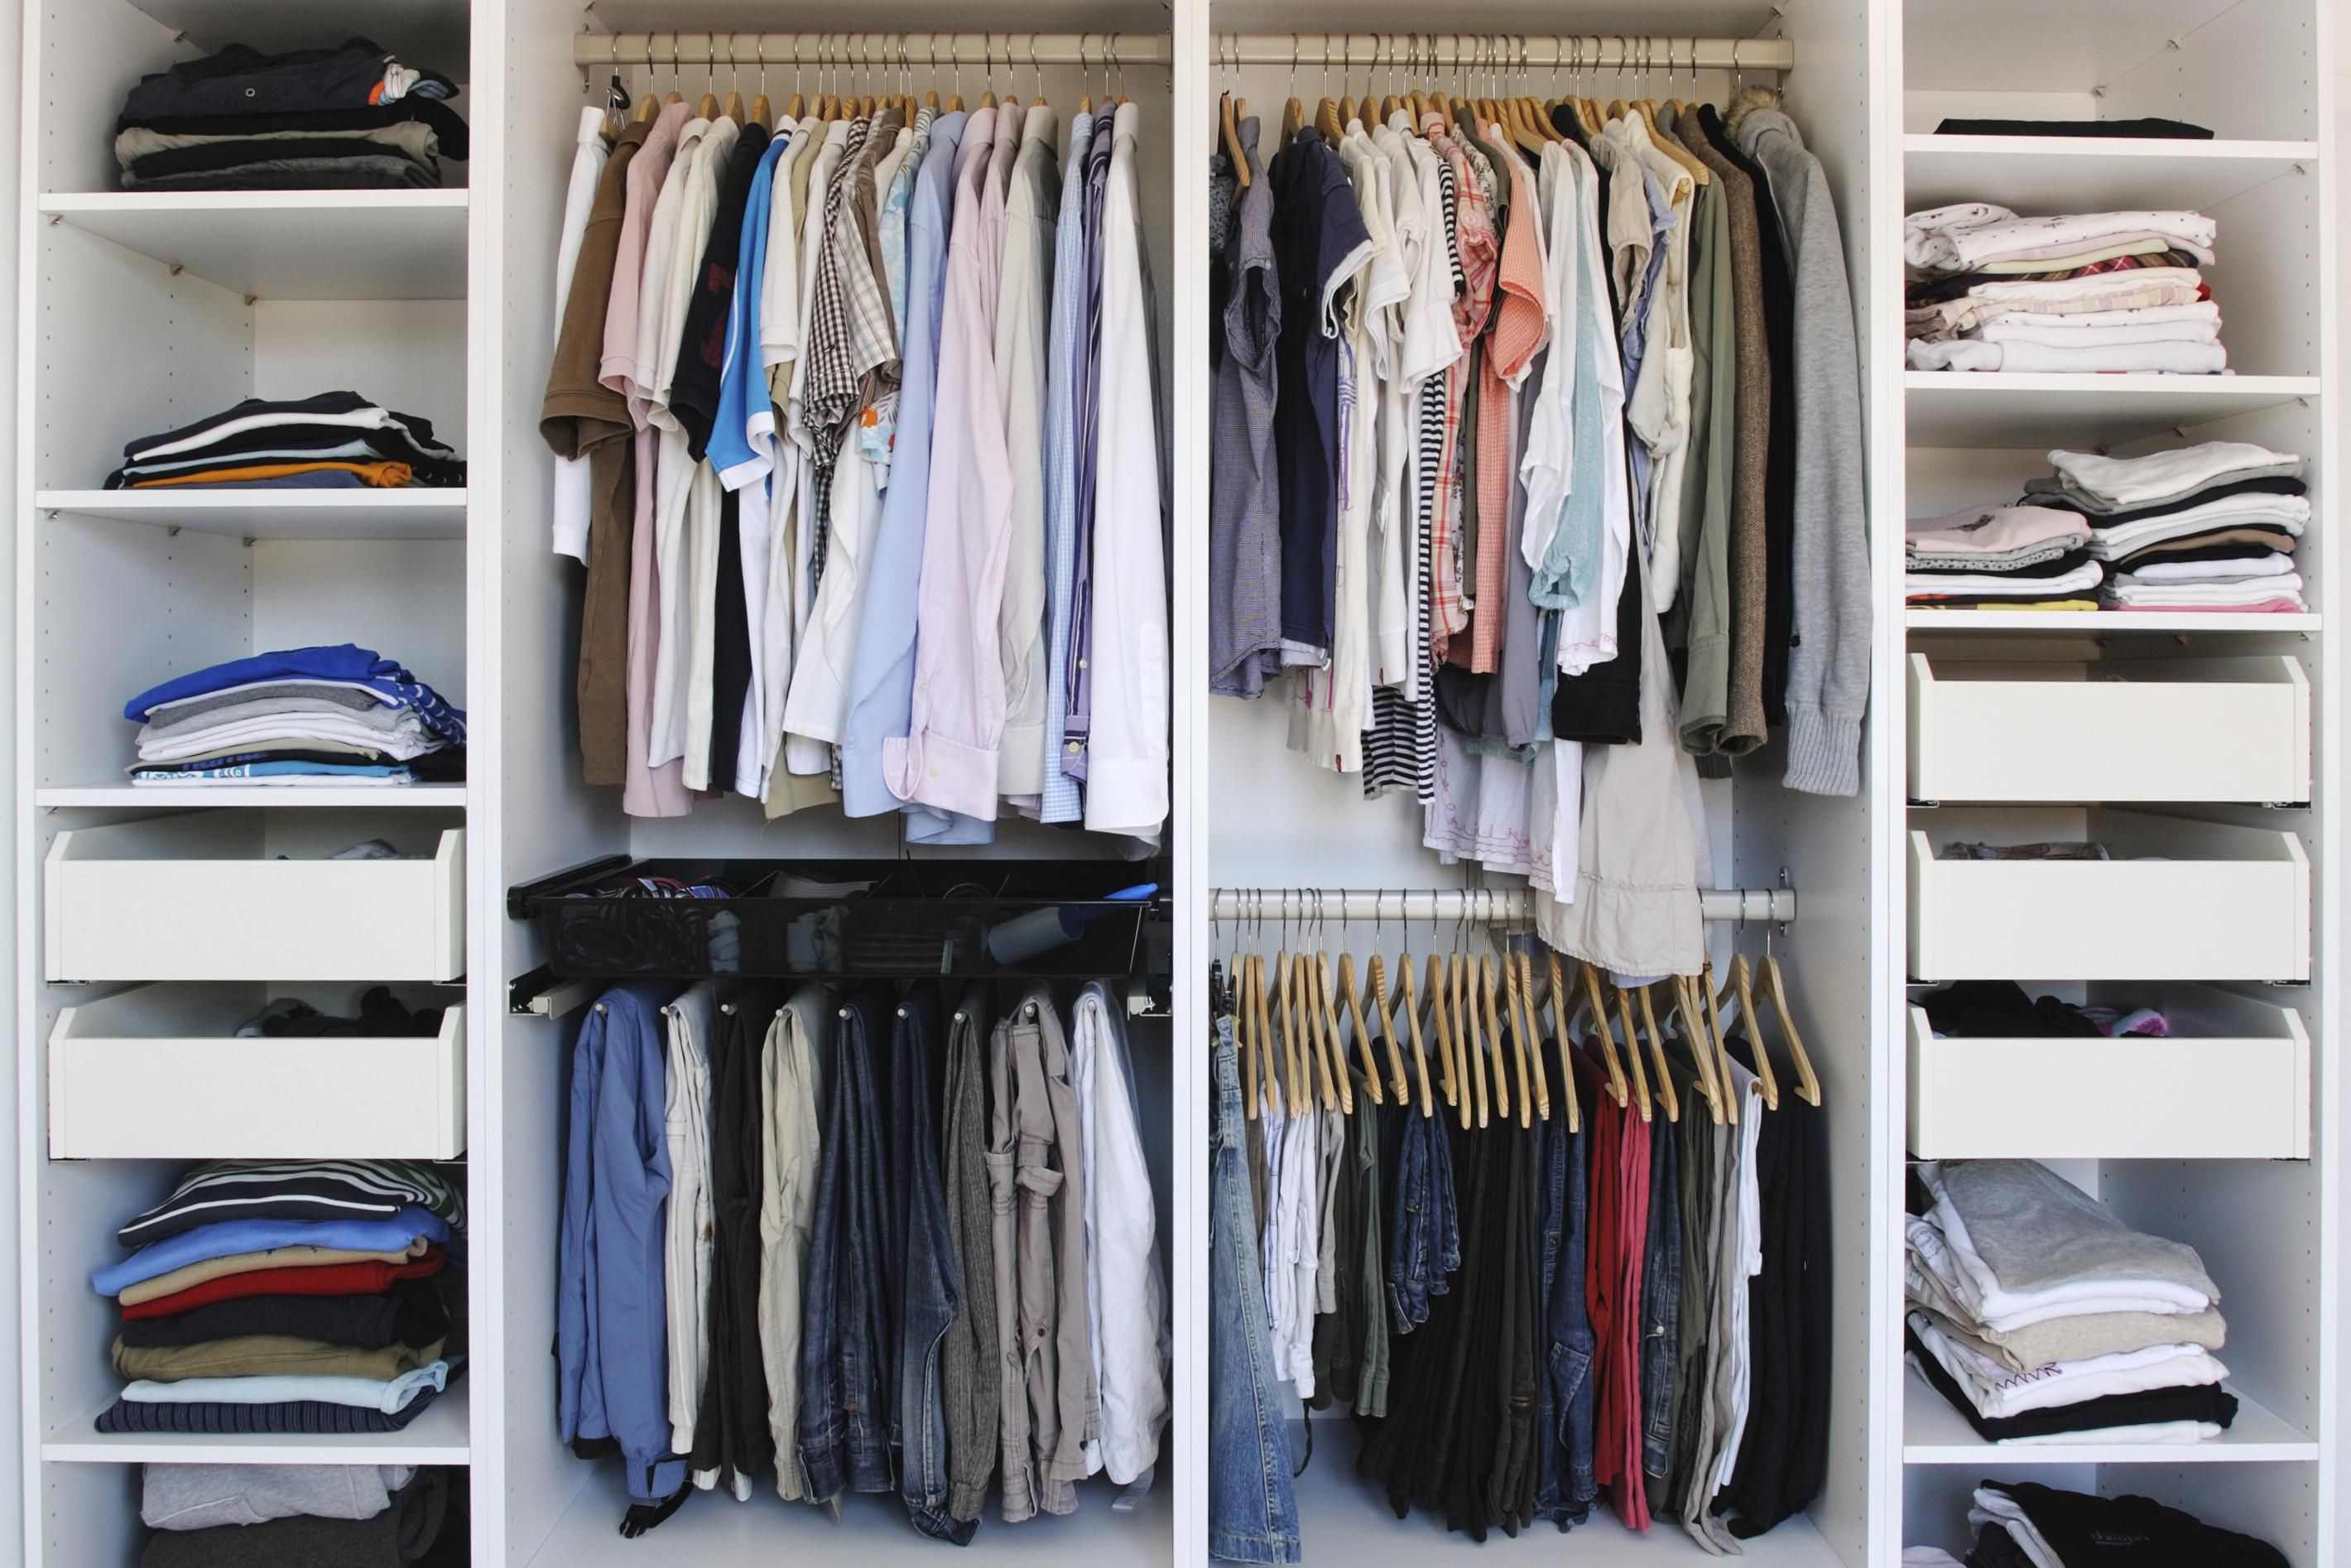 Discover 10 Closet Storage Tricks to Organize Your Closet